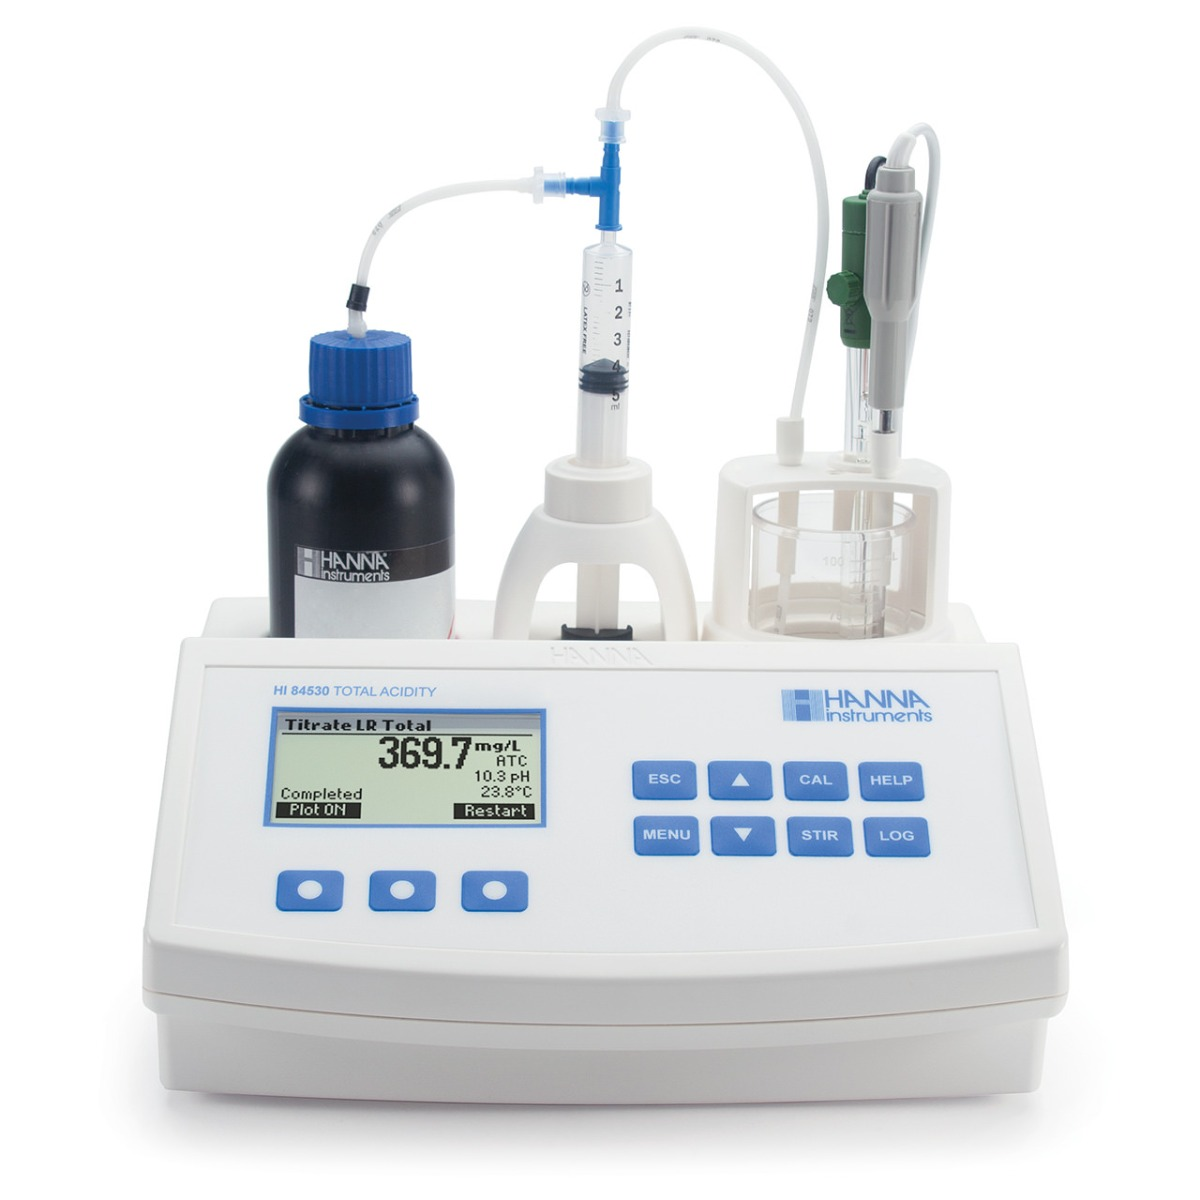 Mini Titrator for Measuring Titratable Acidity in Water - HI84530